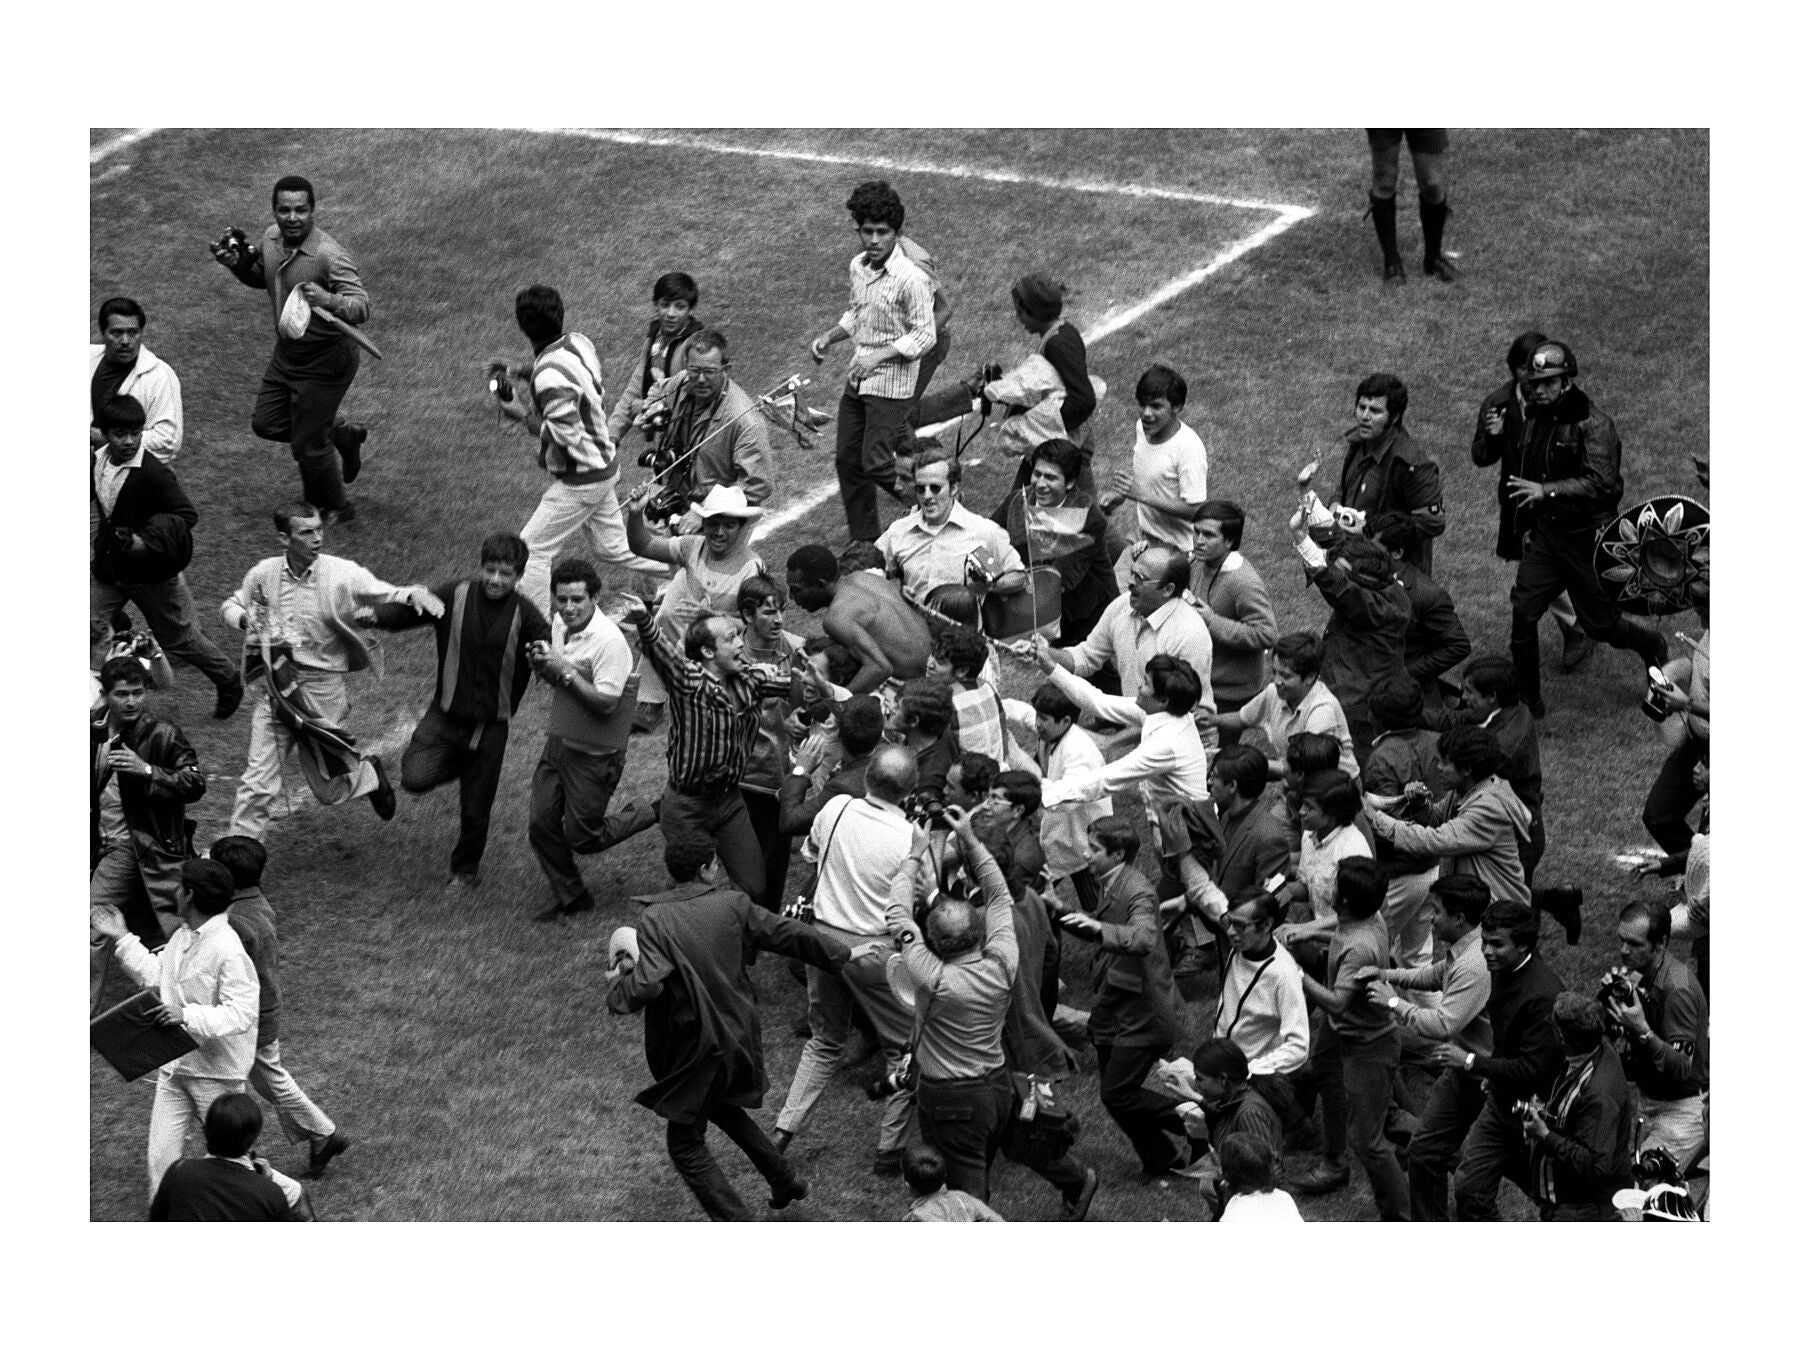 Pele gets mobbed